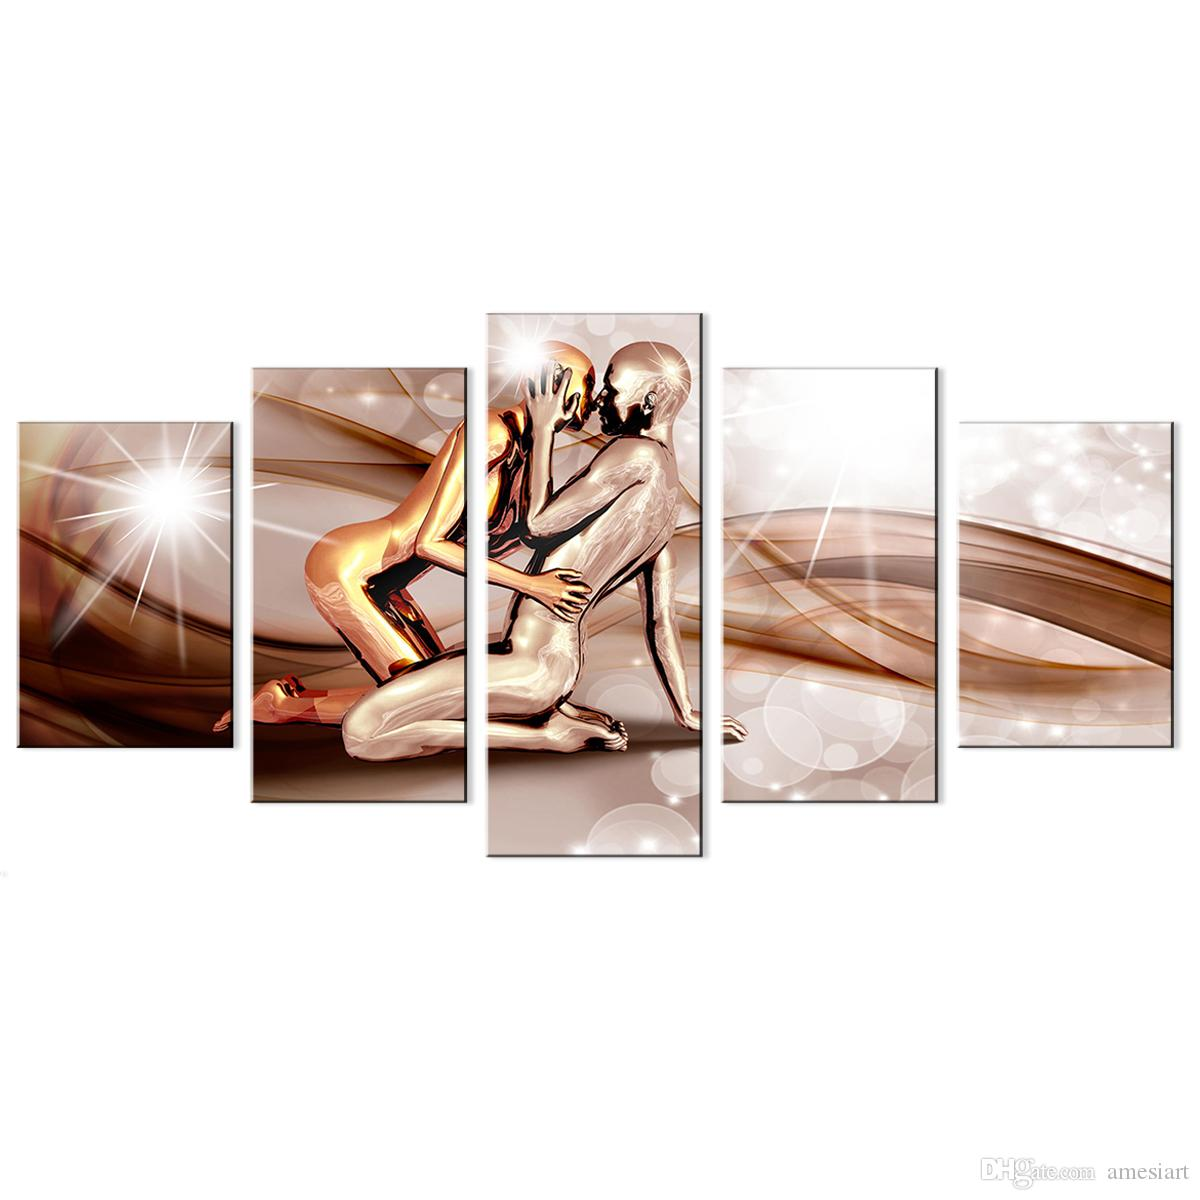 Amosi Art Canvas Print Painting Lovers Bronze Man Abstract Ribbon Background Modern Contemporary Picture Home Decor 5 Panels Pictures Framed